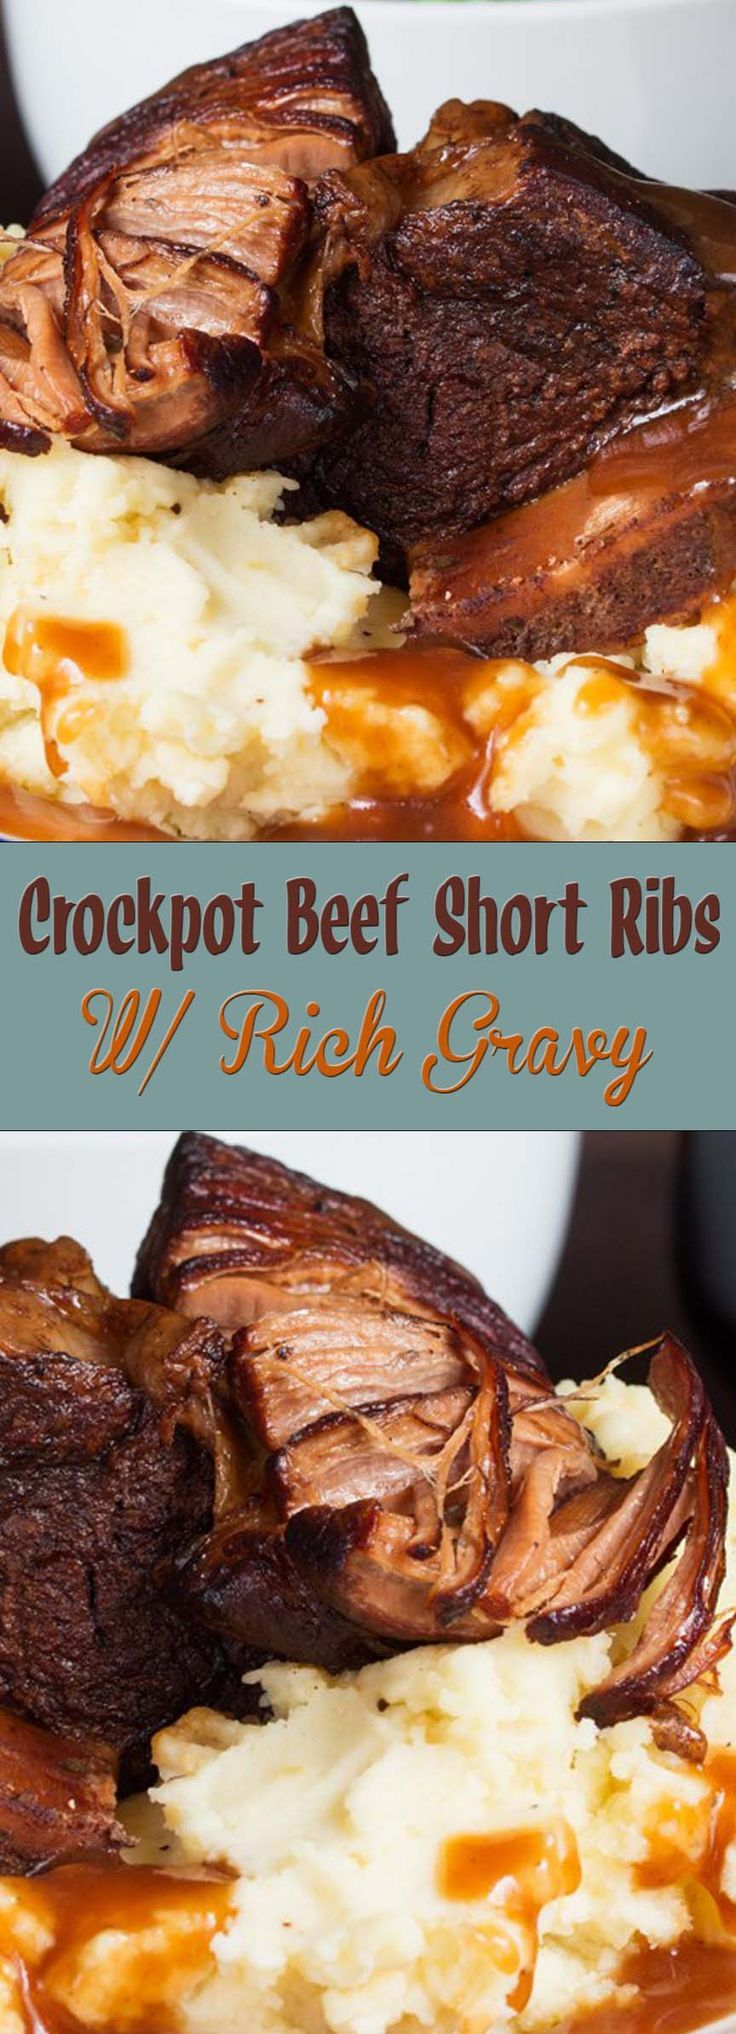 Crockpot Beef Short Ribs w/GravyShort Ribs:1 tbsp oil4 meaty short ribs1 onion, peeled and chopped3 cloves garlic, peeled and minced1 cup (240ml) red wine2 and ⅔rds of a cup (640ml) beef stock (water + 3 beef stock cubes is fine – or use vegetable bouillon for gluten-free)1 tsp dried thyme1 tbsp tomato puree 1 tsp sugar2 bay leaves¼ tsp salt¼ tsp pepper1 tbsp Worcestershire sauceFor the gravy:2 tbsp cornstarch/cornflour5 tbsp cold water